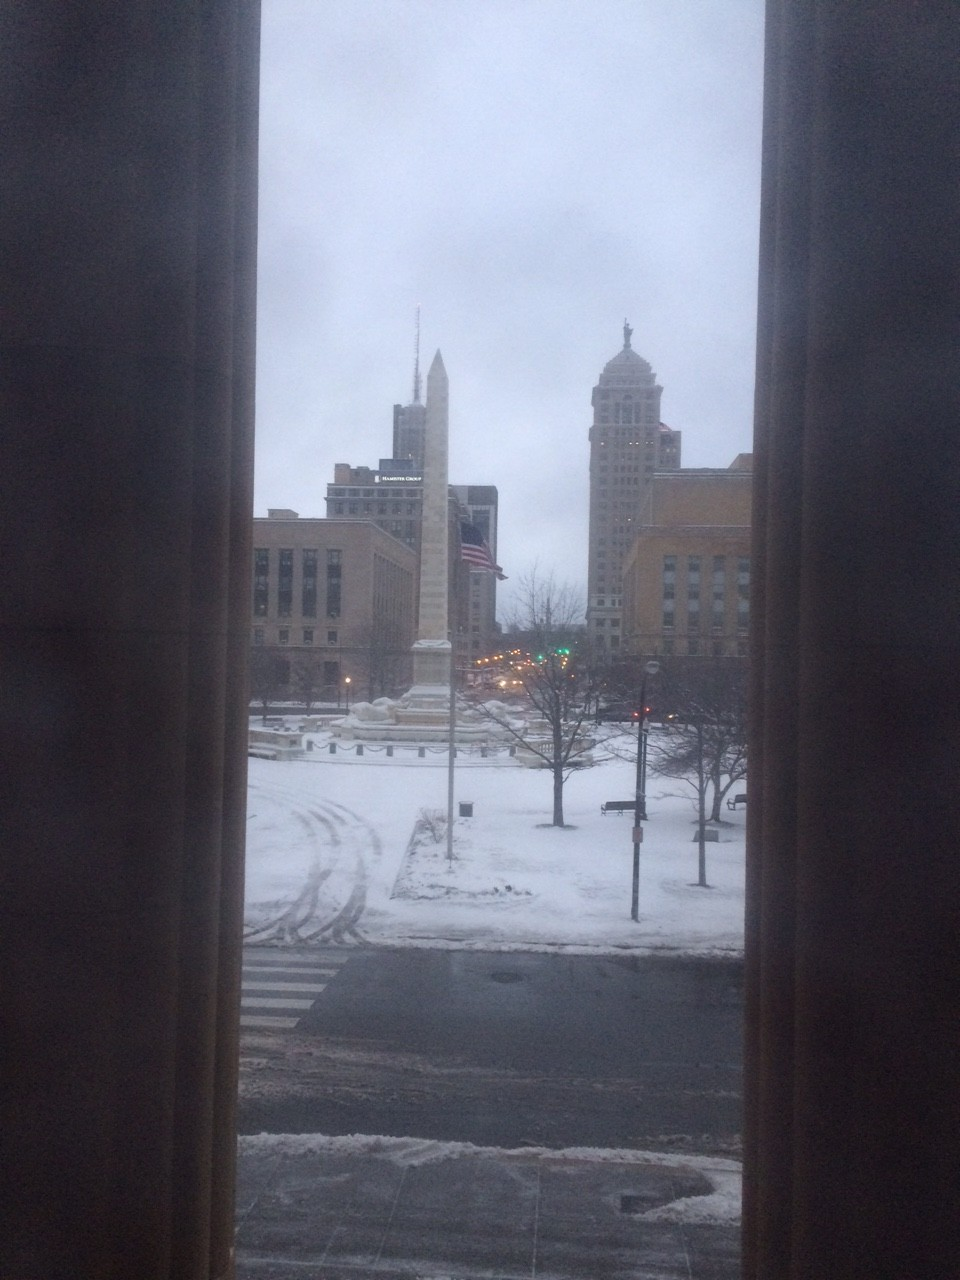 Looking out my window on second floor of City Hall, 7:20 a.m., April 4, 2016